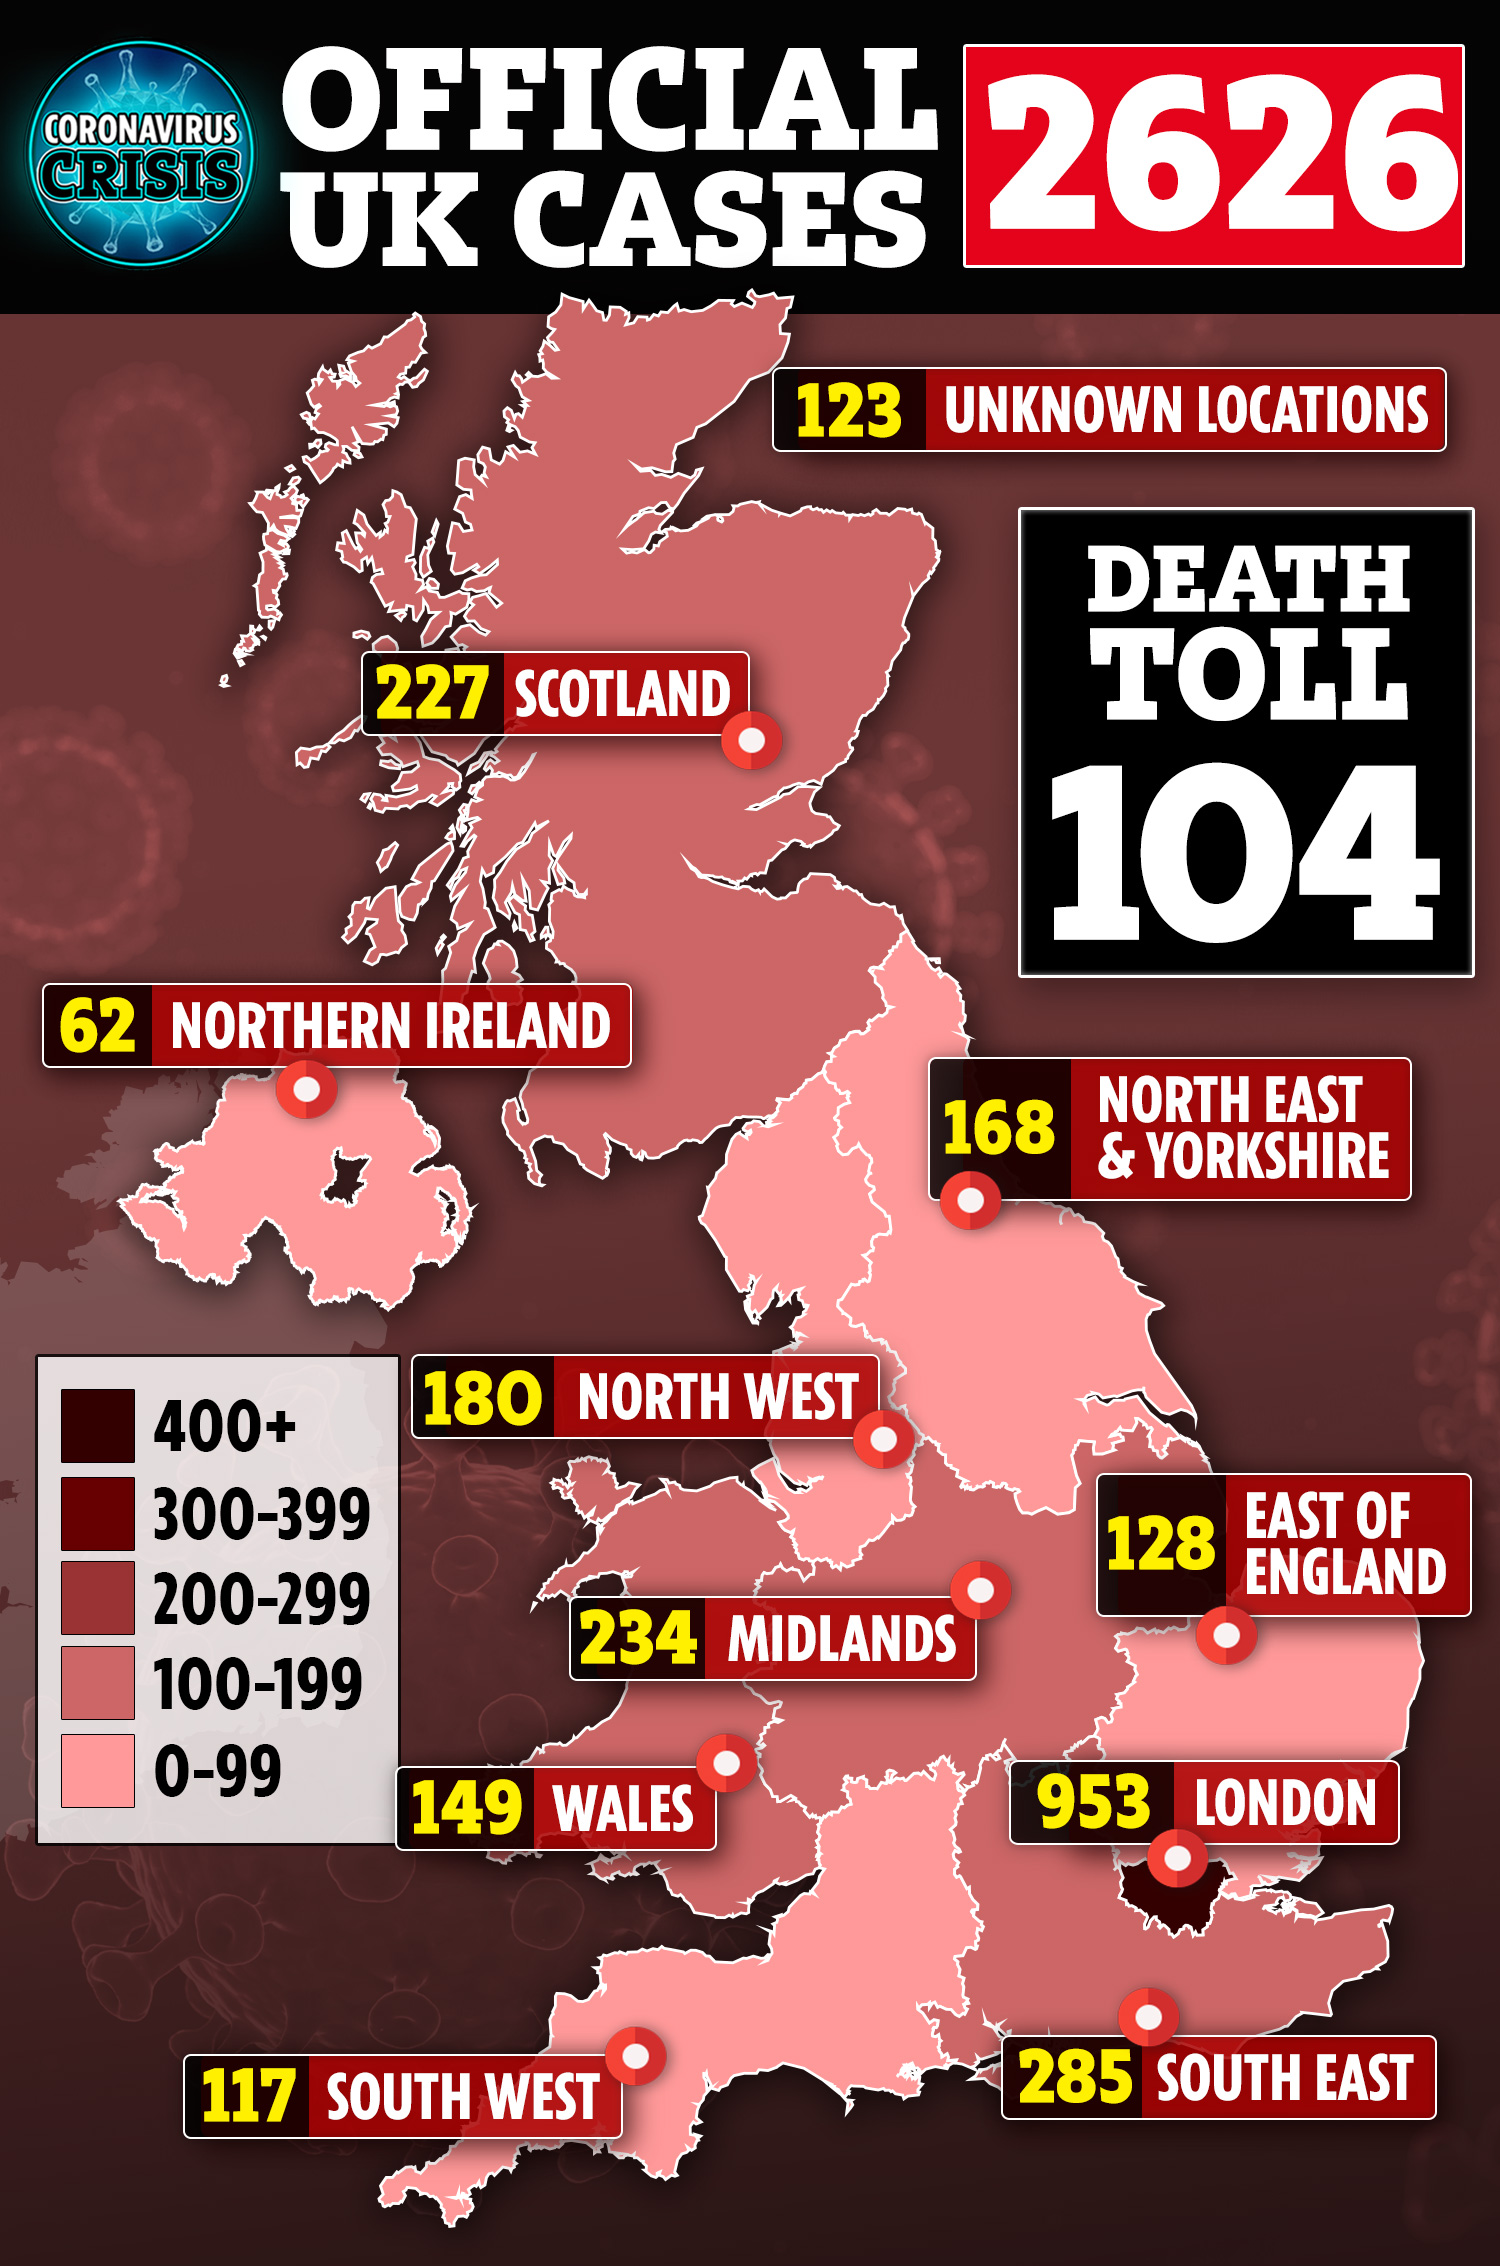 Coronavirus UK death toll soars to 104 with 33 more deaths in ...